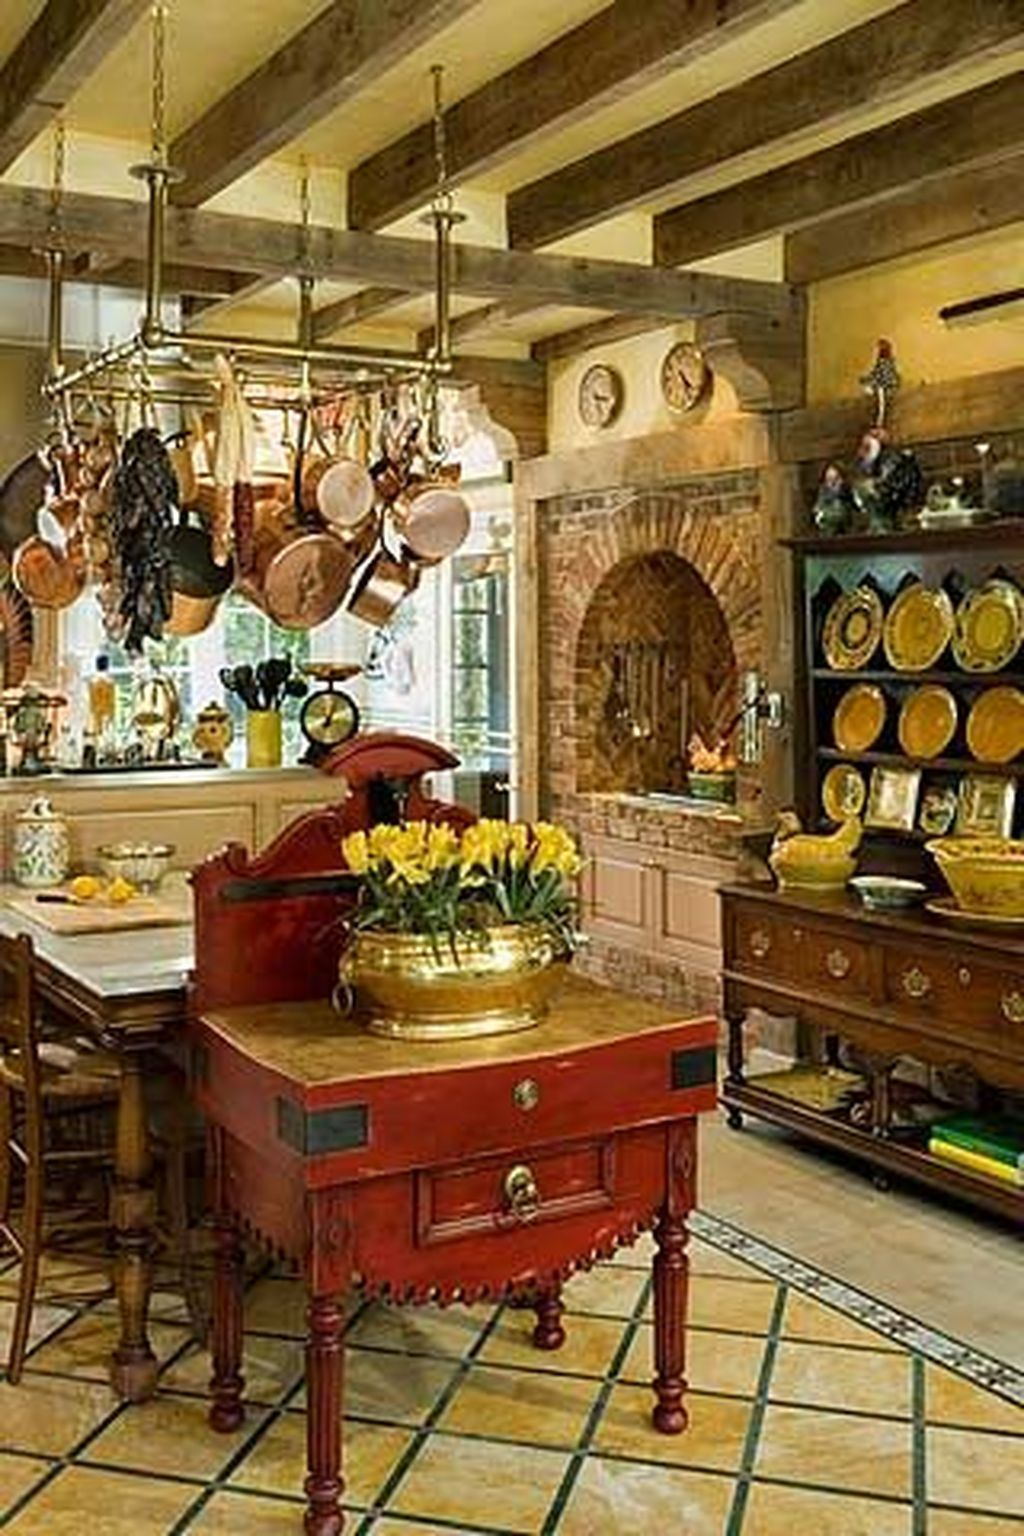 9 Fancy Rustic Italian Decor Ideas - ROUNDECOR  Rustic italian